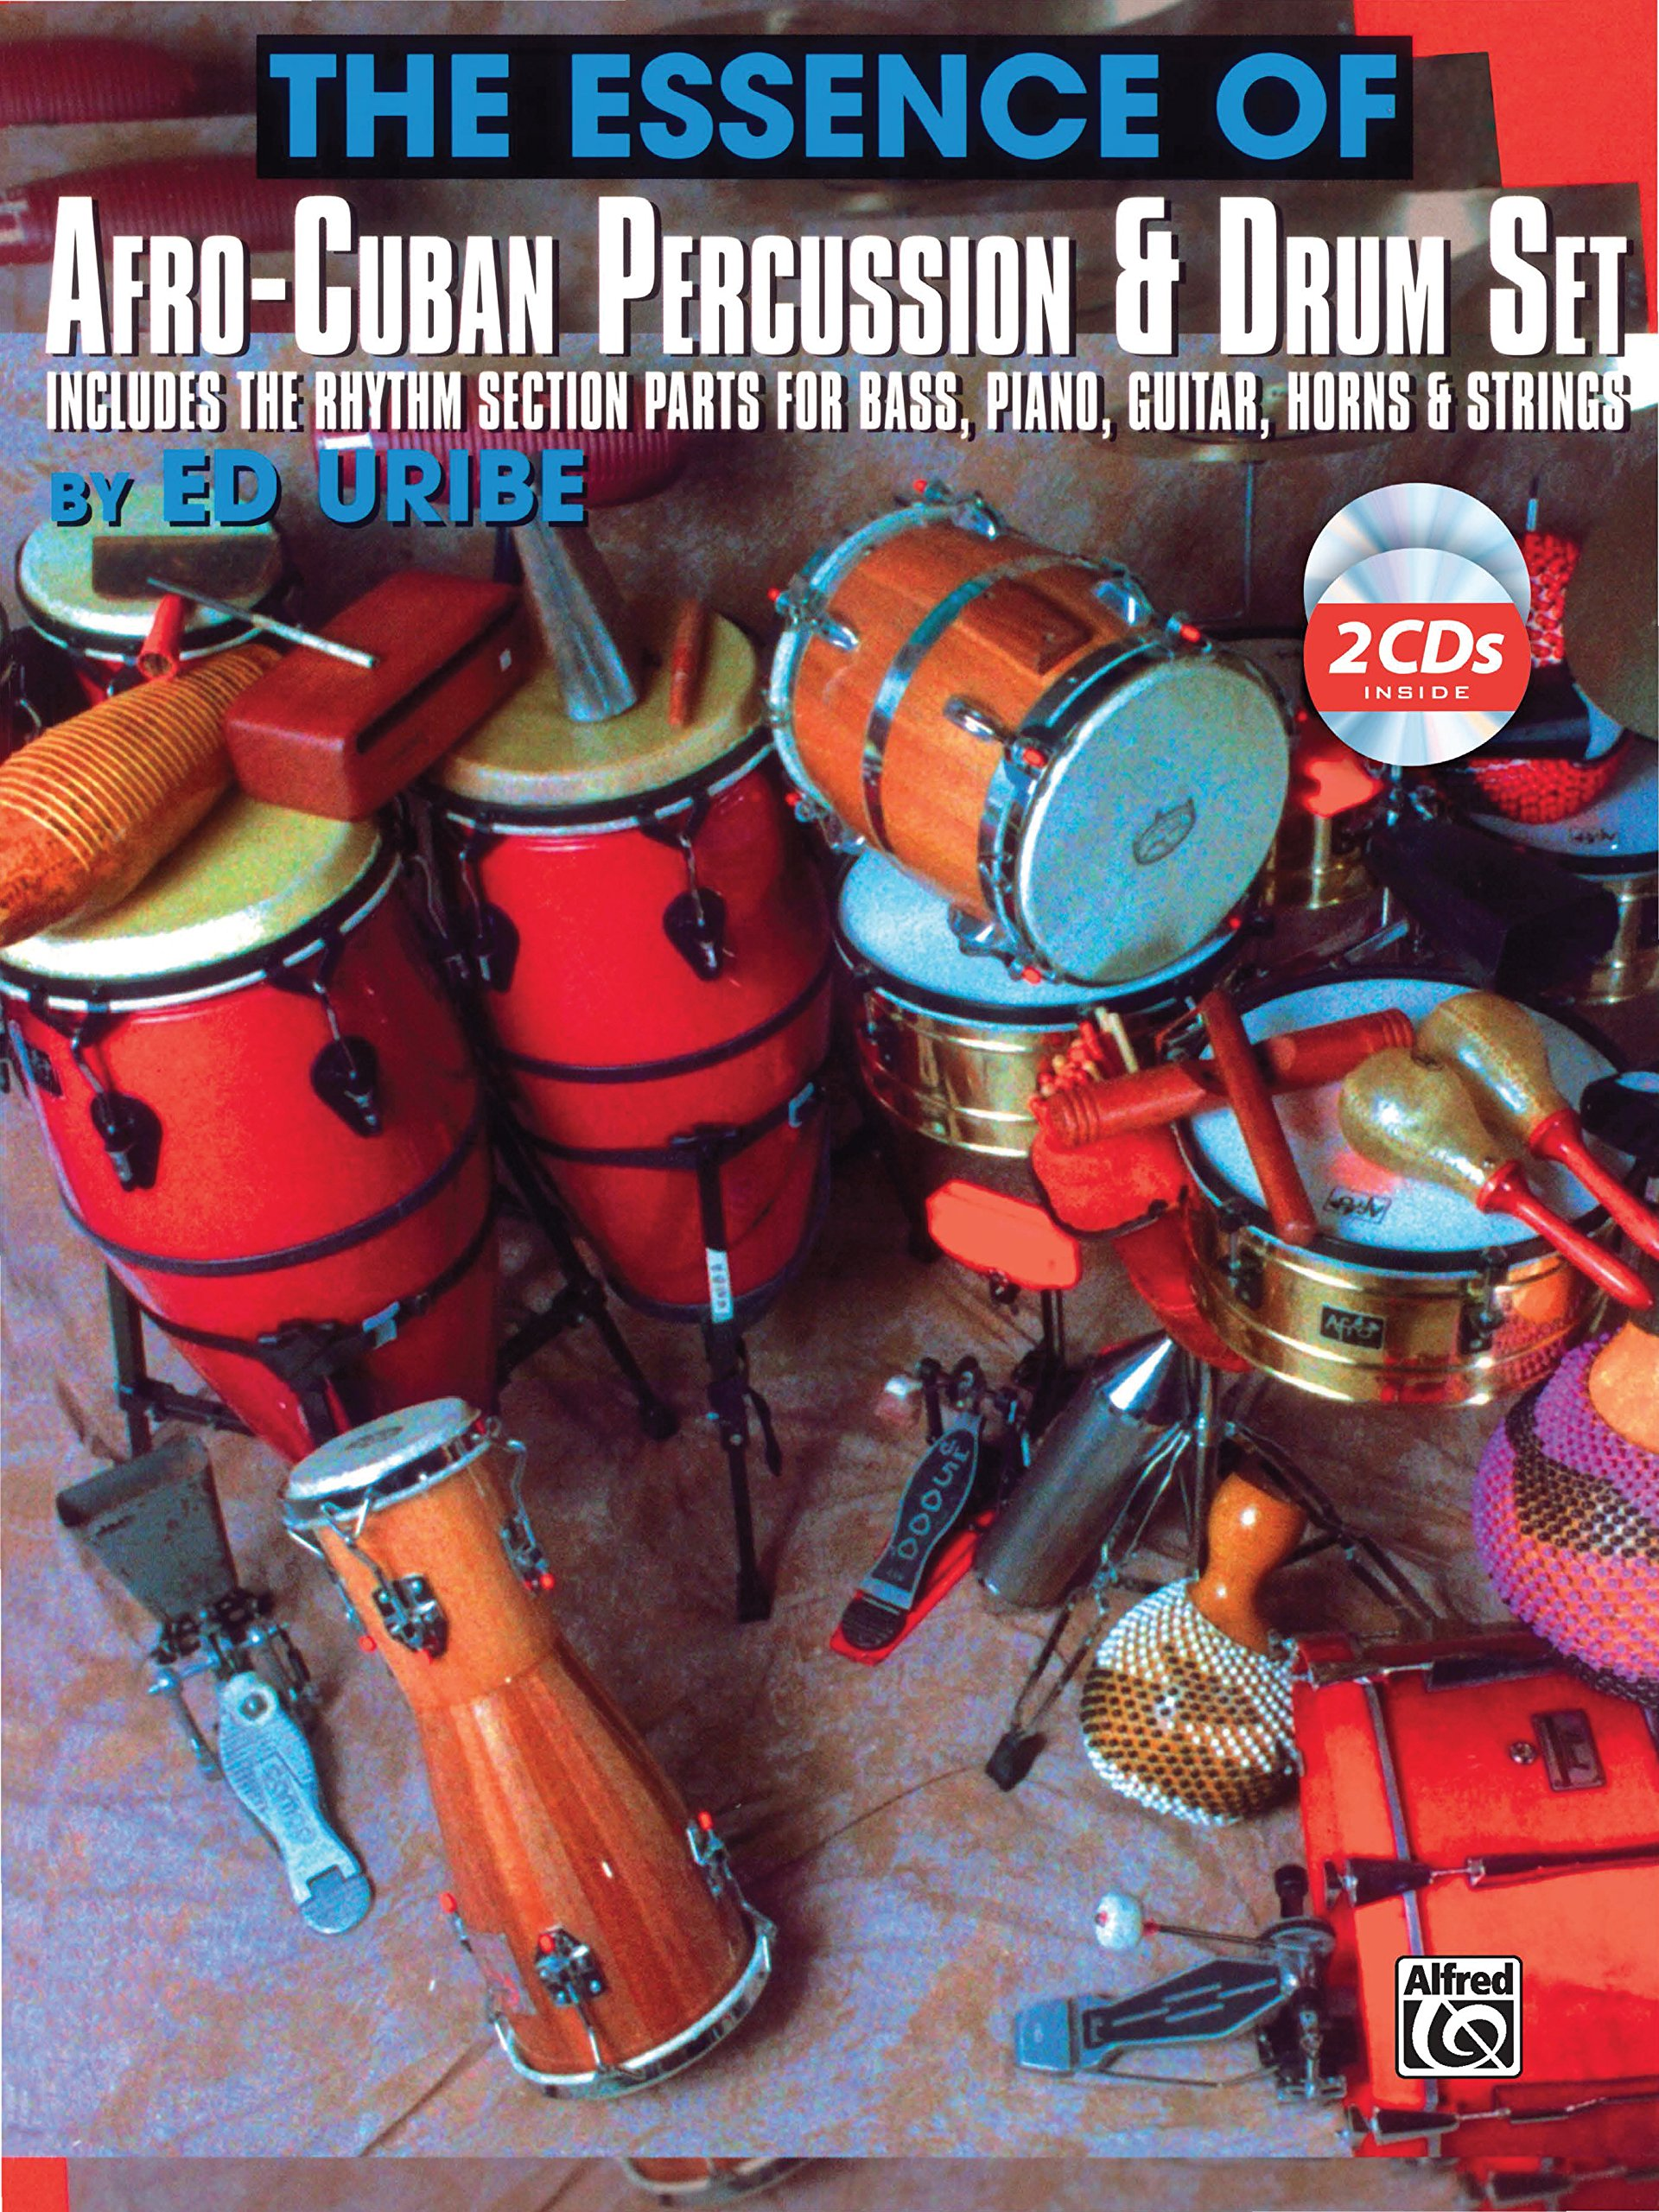 The Essence of Afro-Cuban Percussion u0026 Drum Set Includes the Rhythm Section Parts for Bass Piano Guitar Horns u0026 Strings Book u0026 2 CDs Ed Uribe ...  sc 1 st  Amazon.com & The Essence of Afro-Cuban Percussion u0026 Drum Set: Includes the ... Aboutintivar.Com